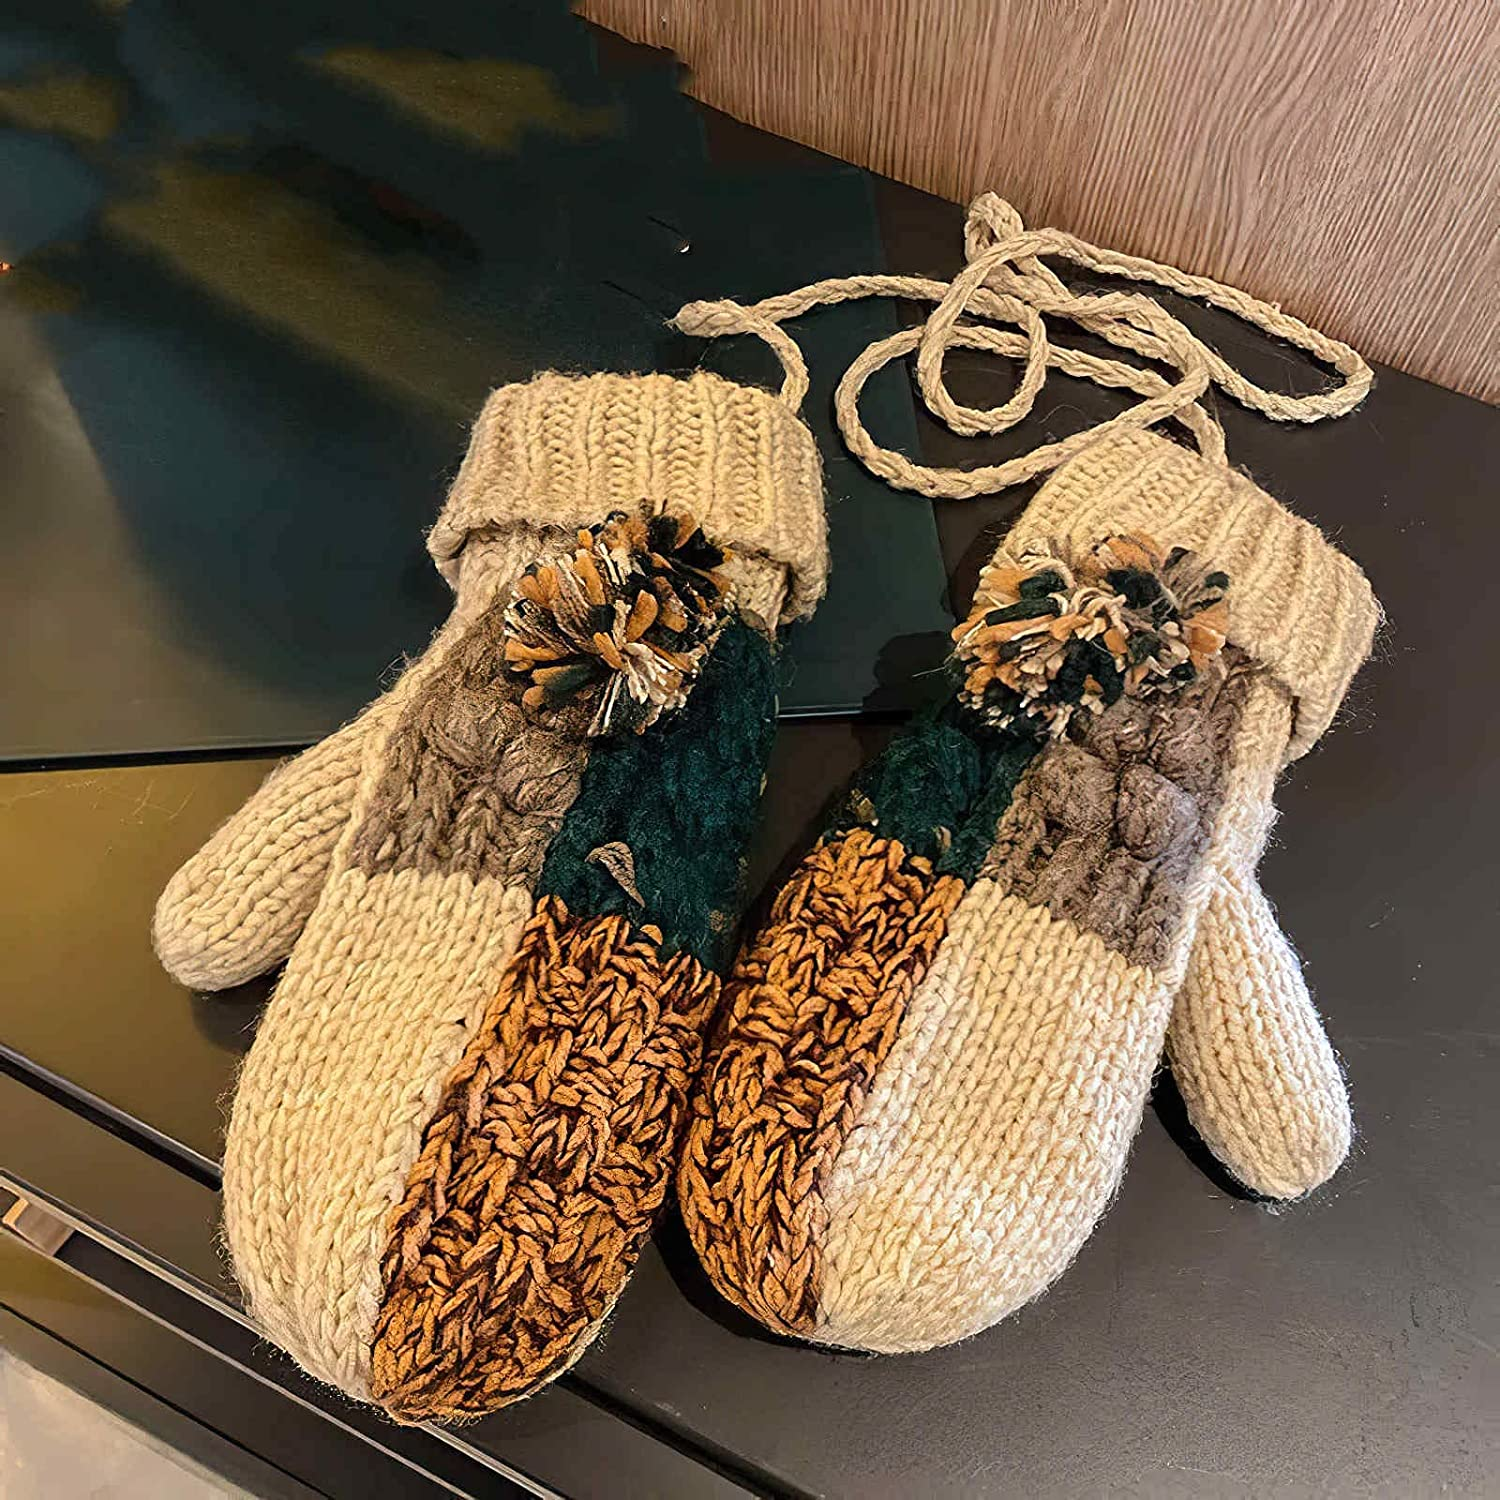 GMMDXD Gloves Winter Women's Thickened Plus Velvet Warm and Cold Wool Knitted Mittens Cute Student Riding Gloves (Color : Beige, Size : One Size)